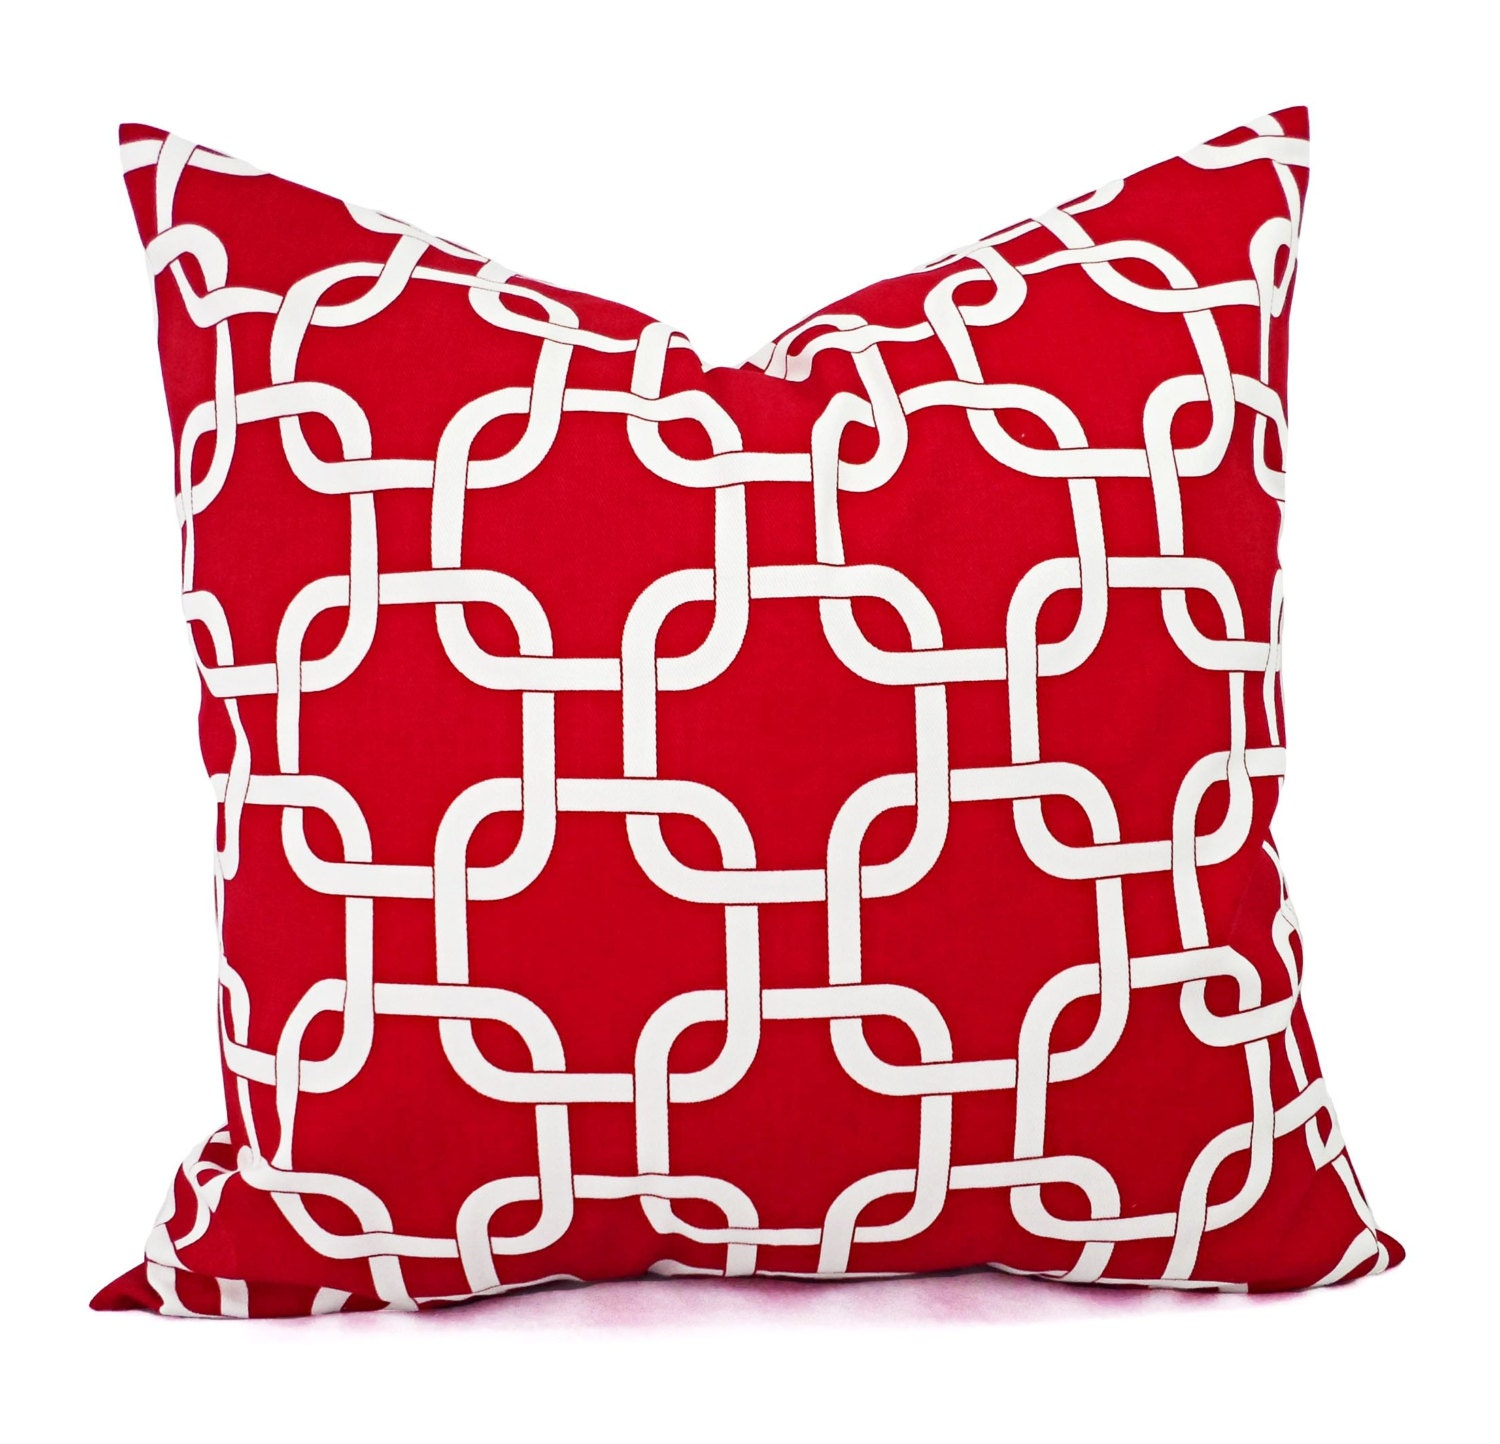 Red And White Throw Pillow Covers : Two Red Pillows Red Pillow Cover Pillows Red Pillow